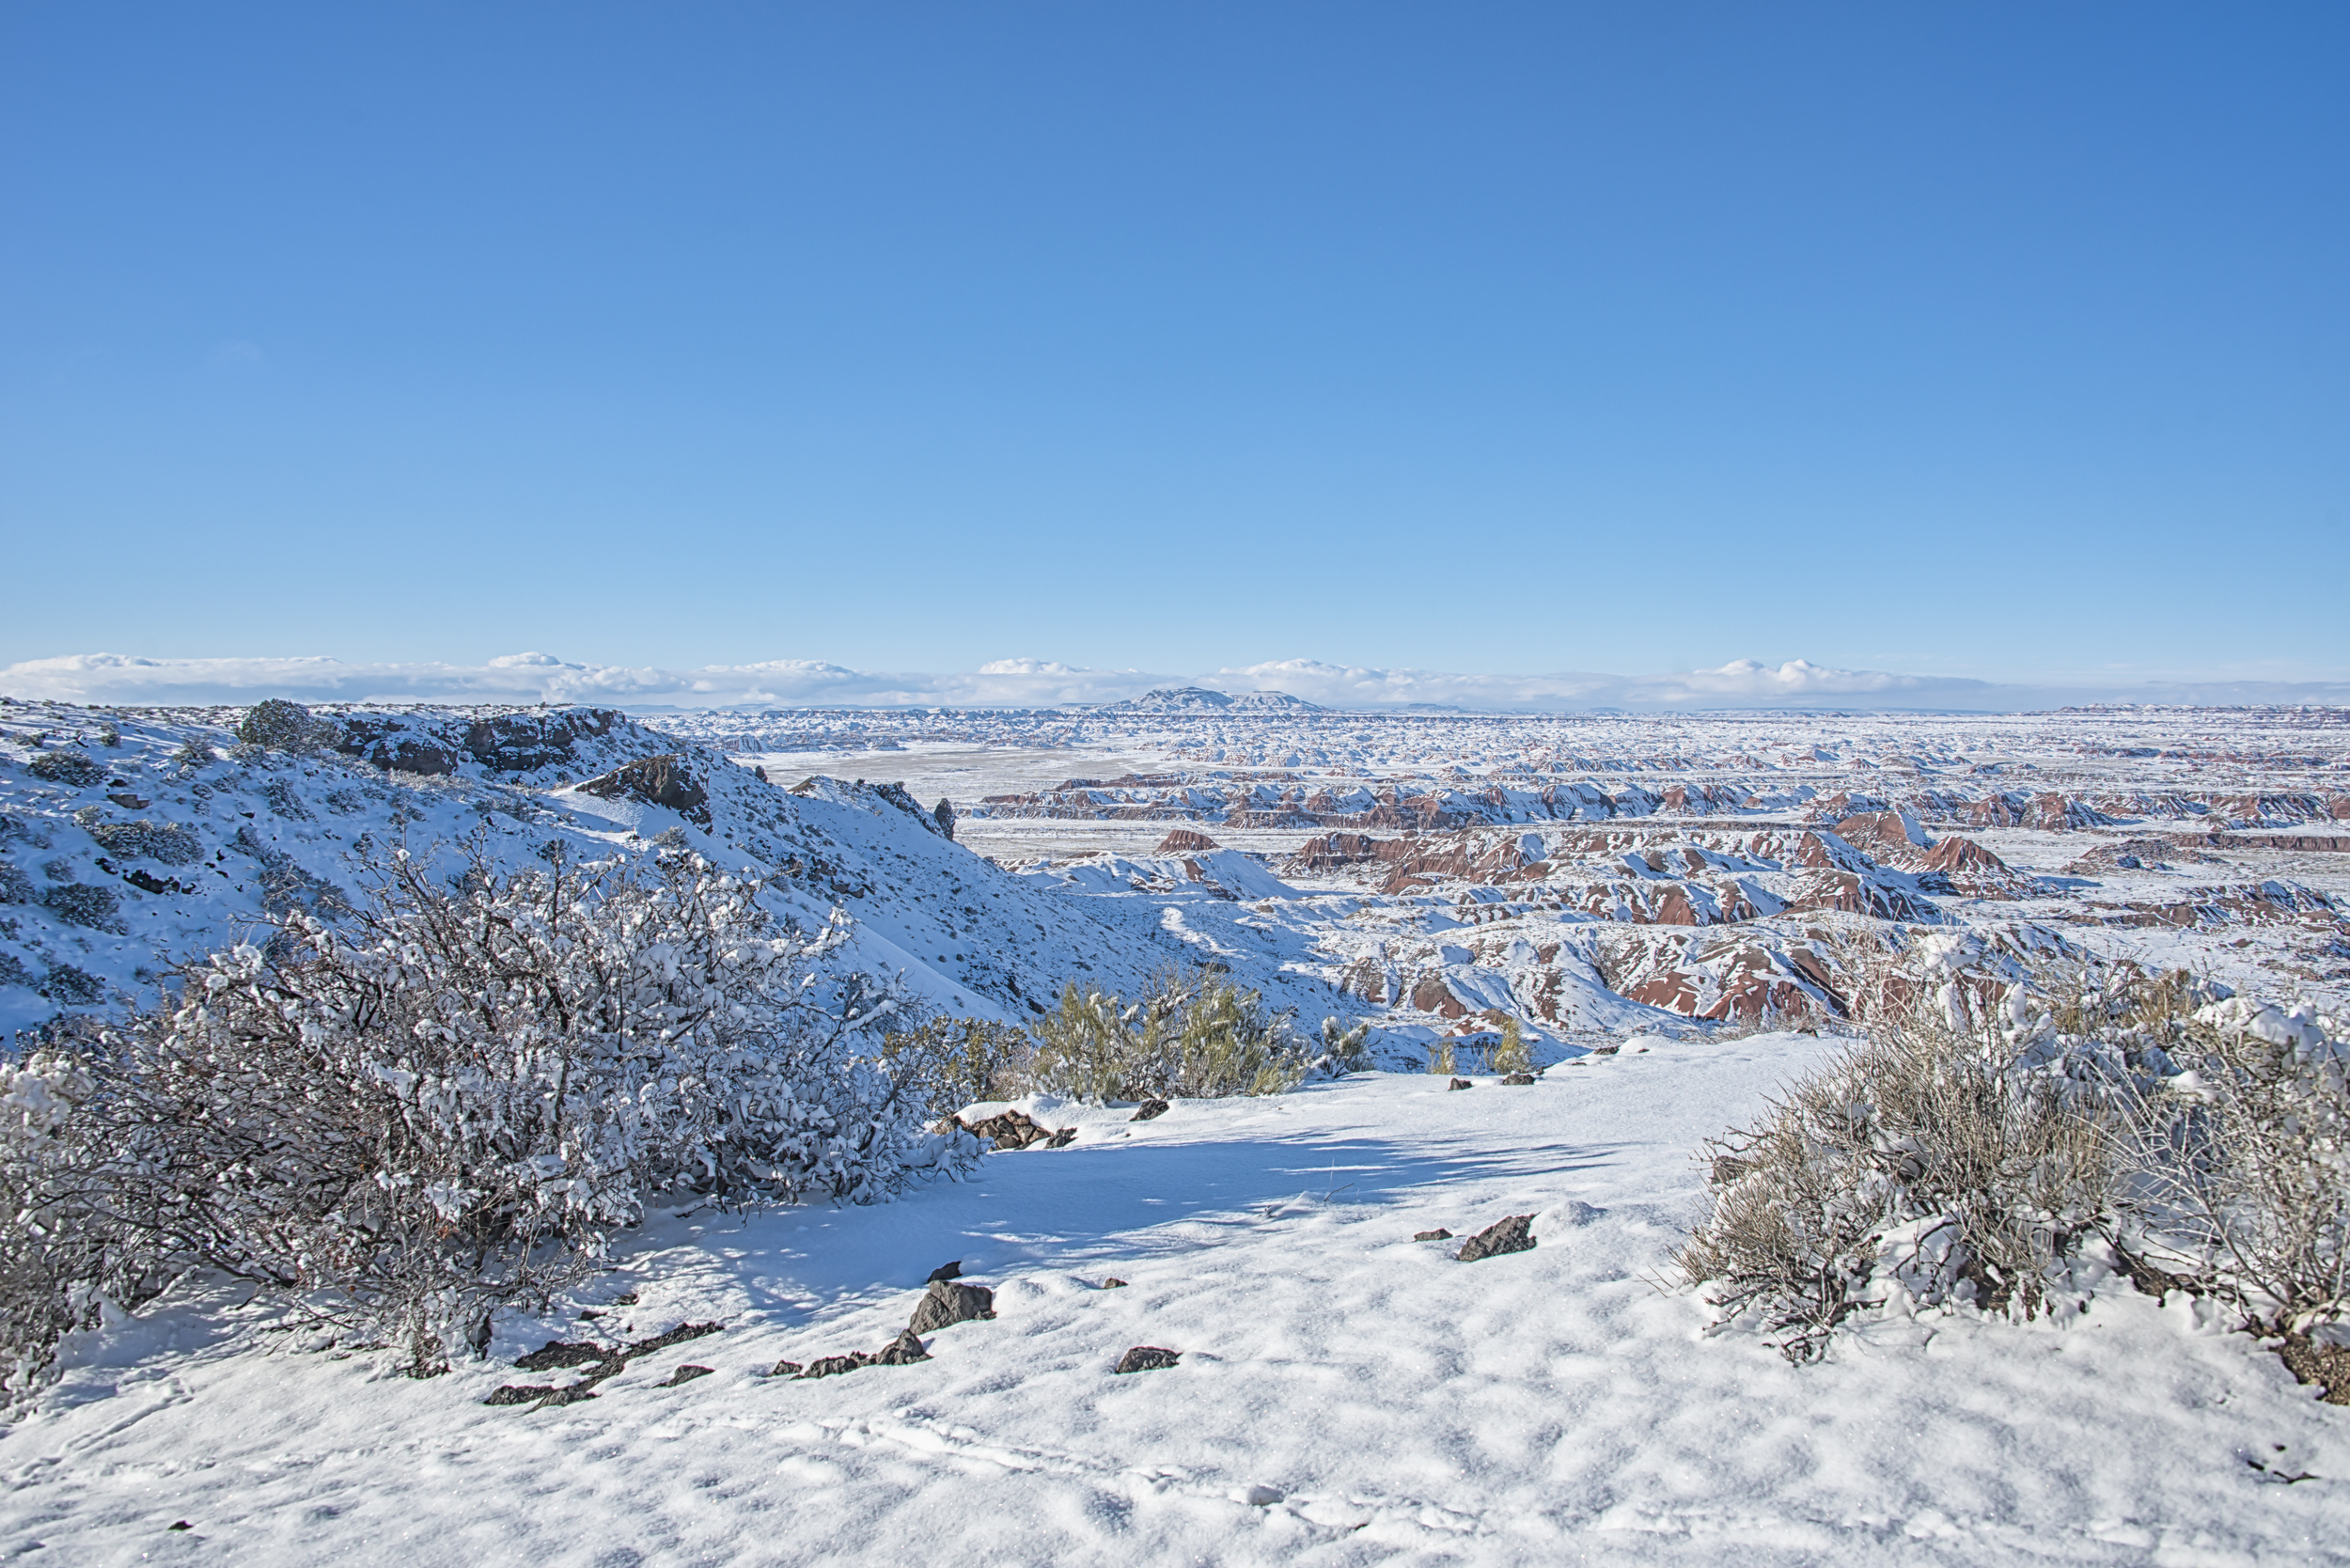 A Painted Desert Painted White-1.jpg